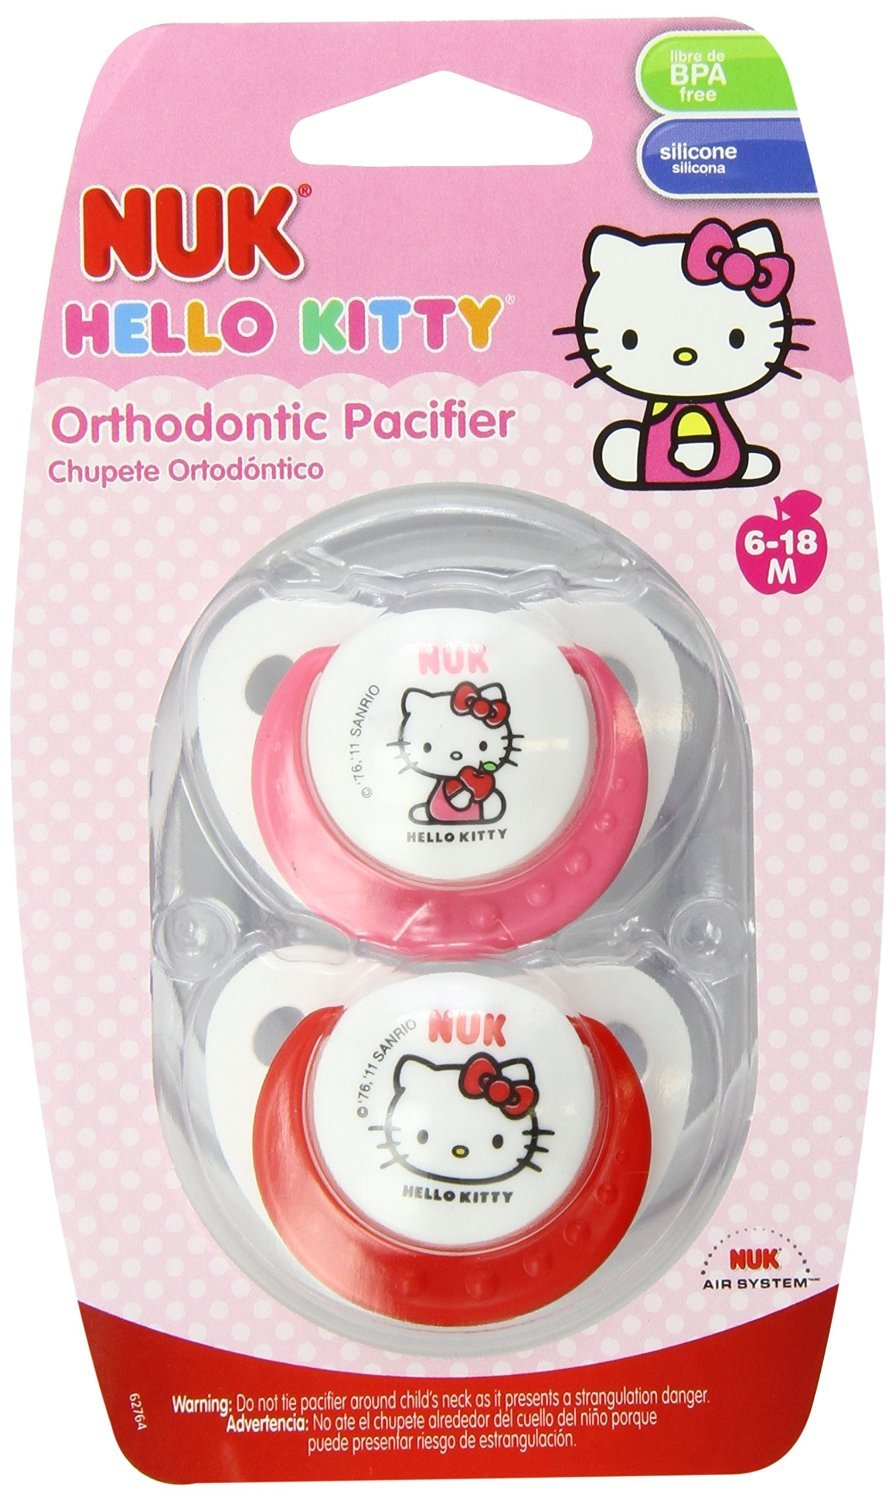 NUK Hello Kitty Puller Pacifier, 6-18 Months: Amazon.es: Bebé